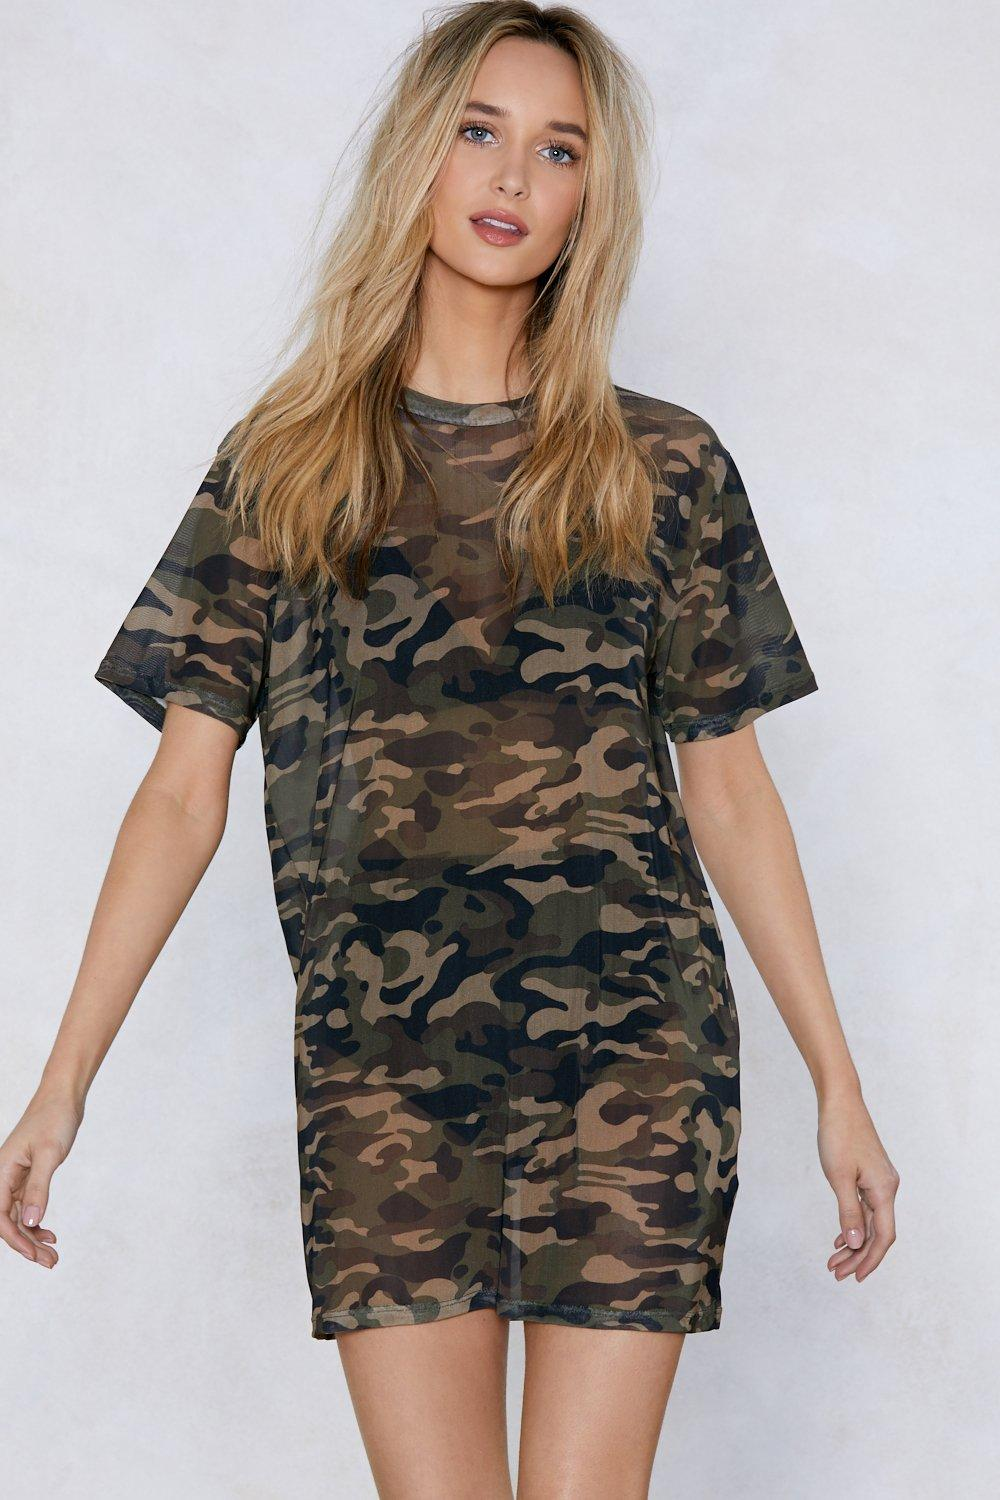 You Mesh Believe It Camo Dress | Shop Clothes at Nasty Gal!